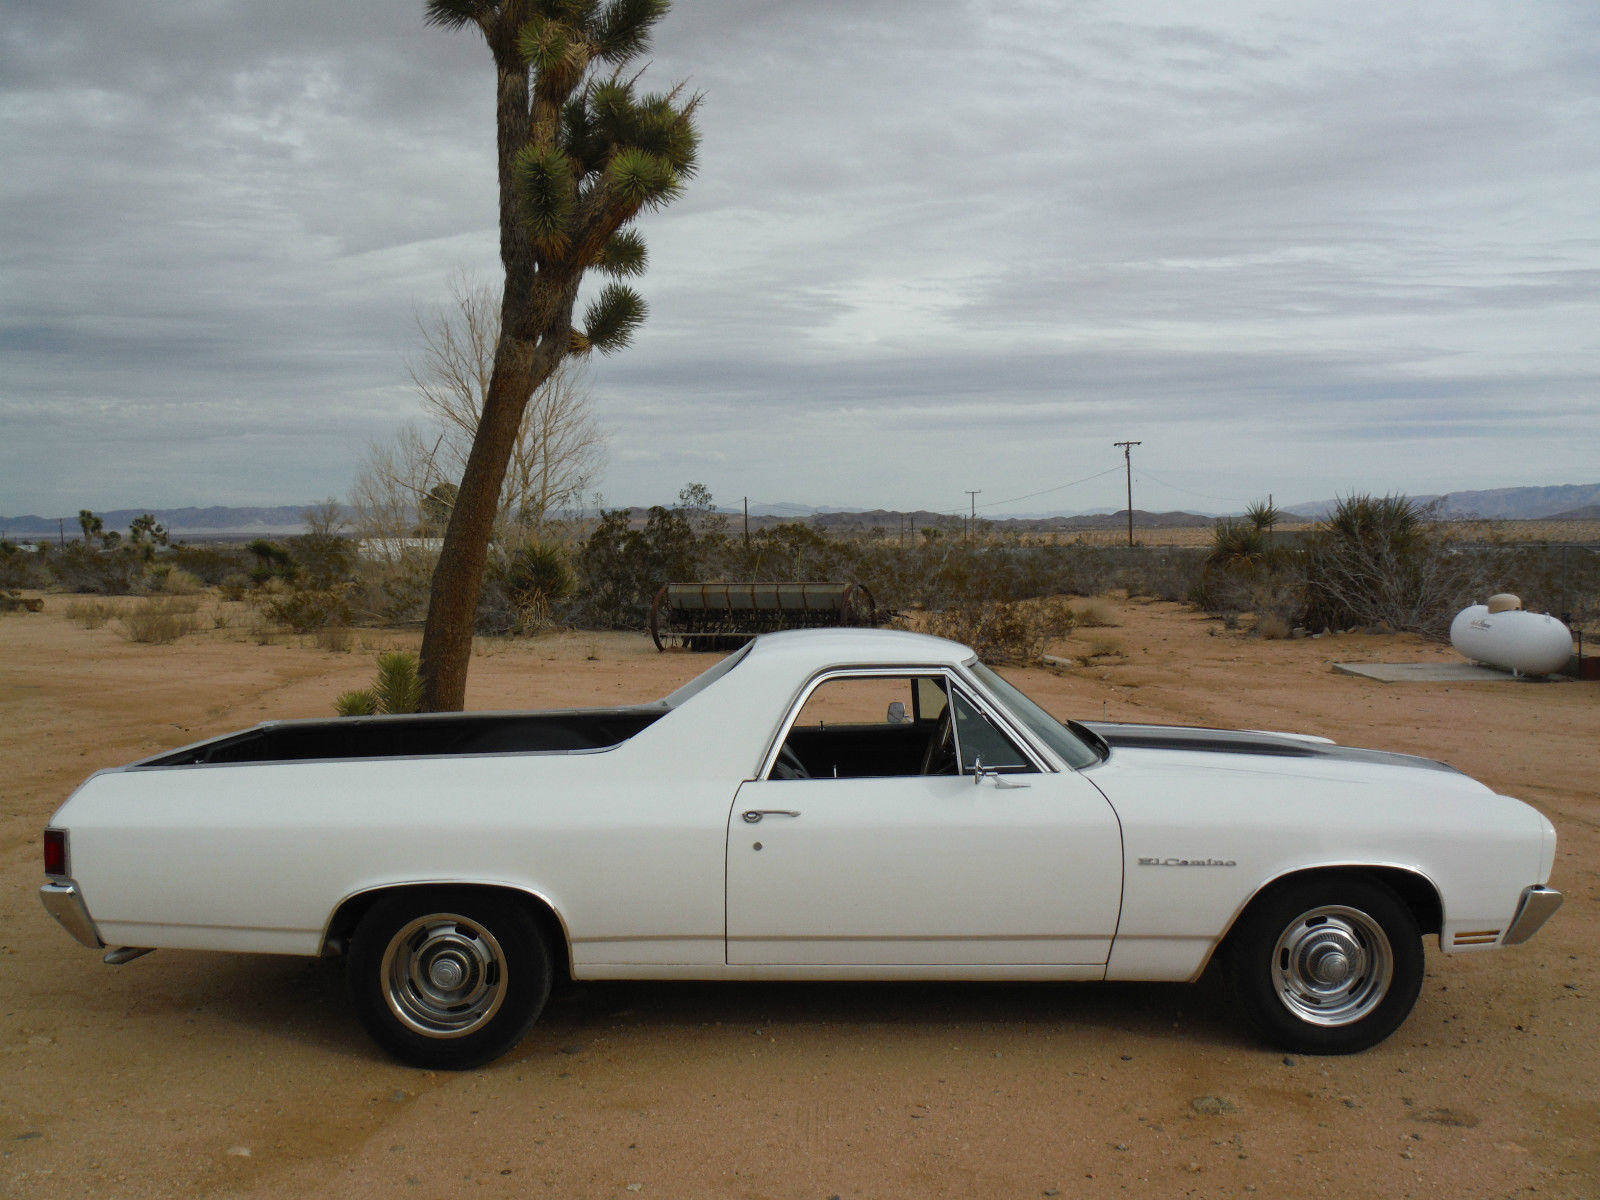 1970 El Camino 454 700r4 California Car Fun To Drive Rally Wheels 1954 Chevy Chopped And Bagged Rat Rod